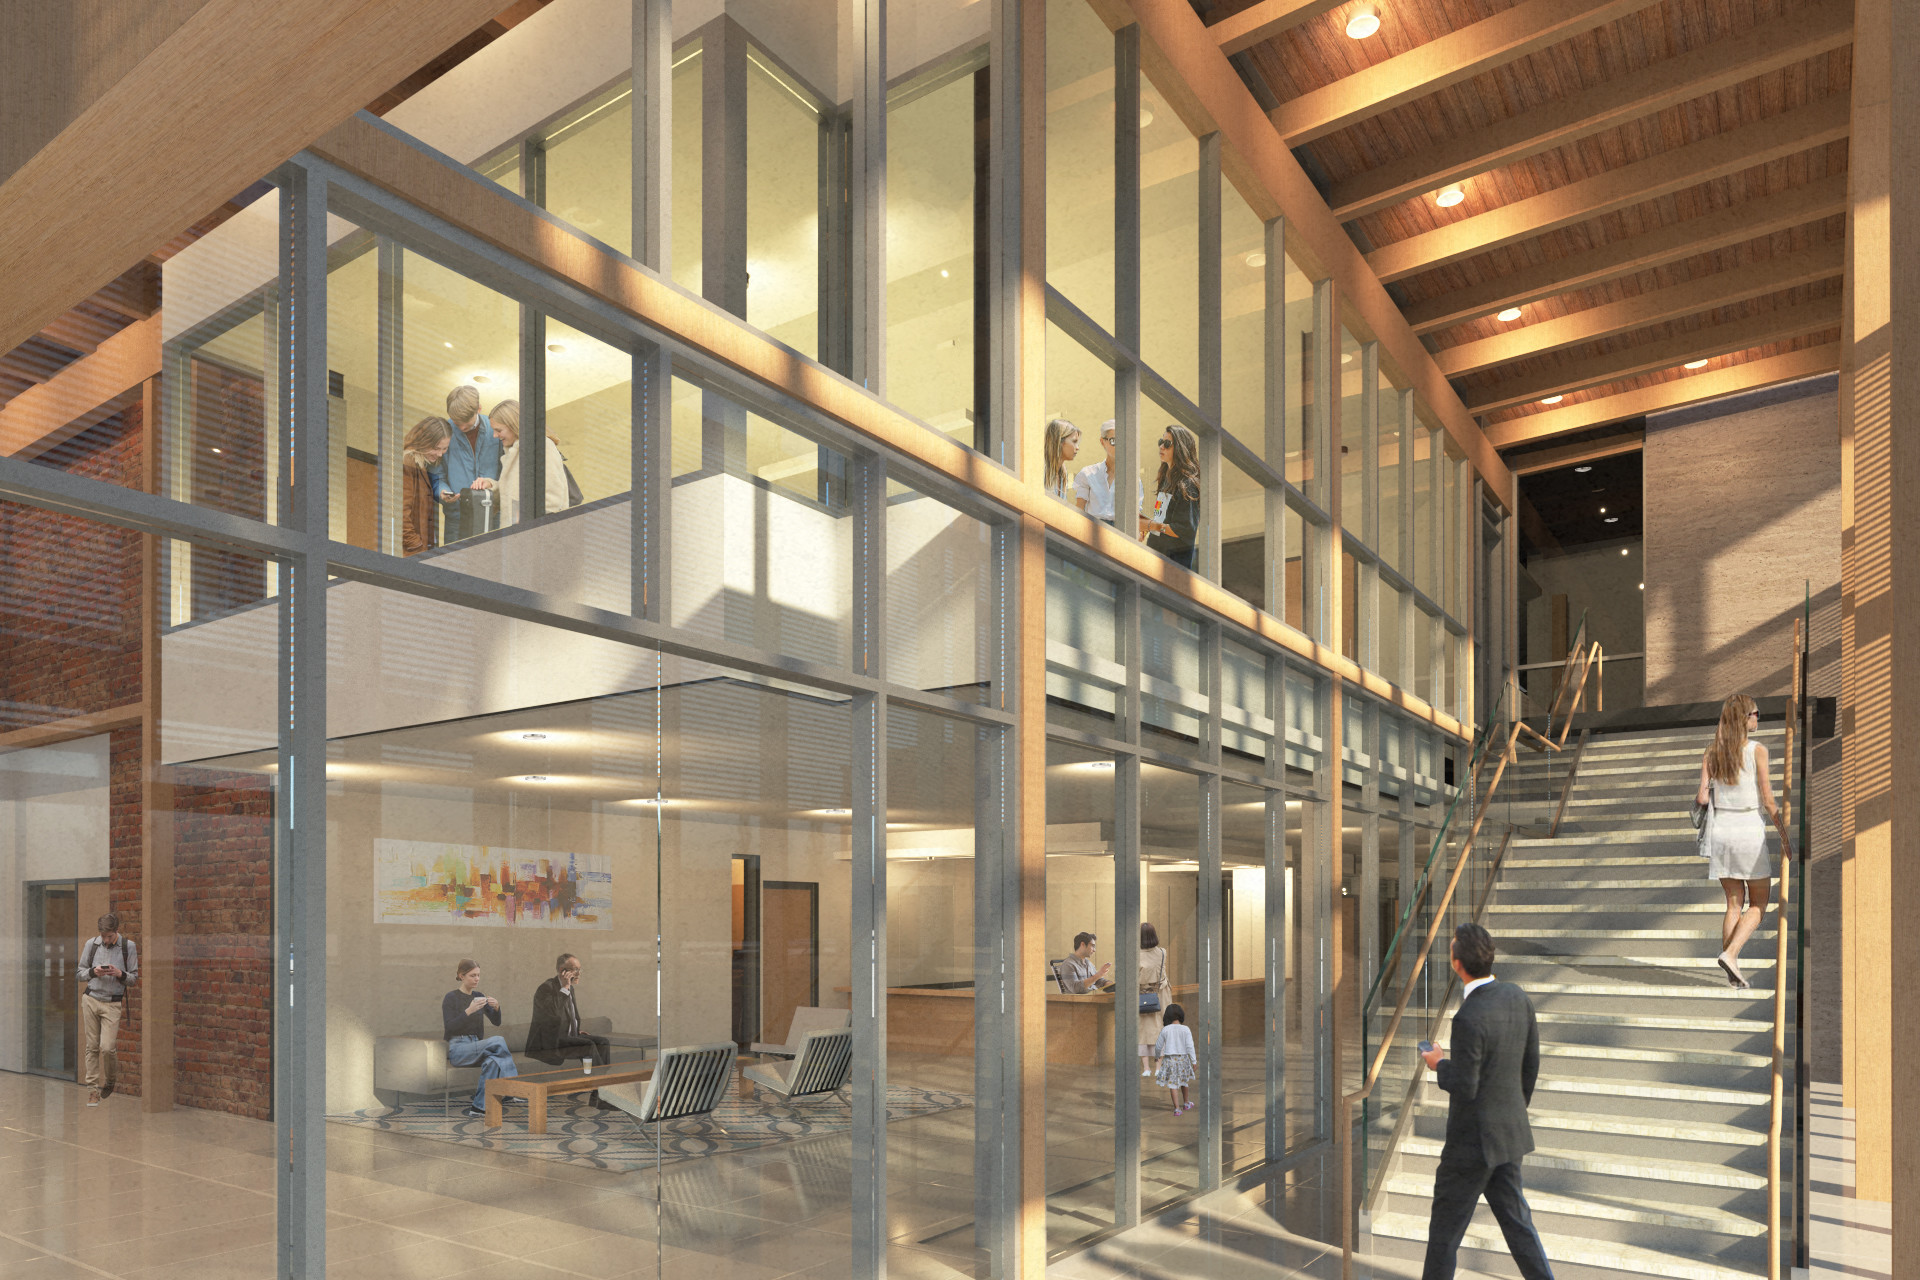 Glazed front entrance lobby with steel window framing, open staircase and wood rafter ceiling